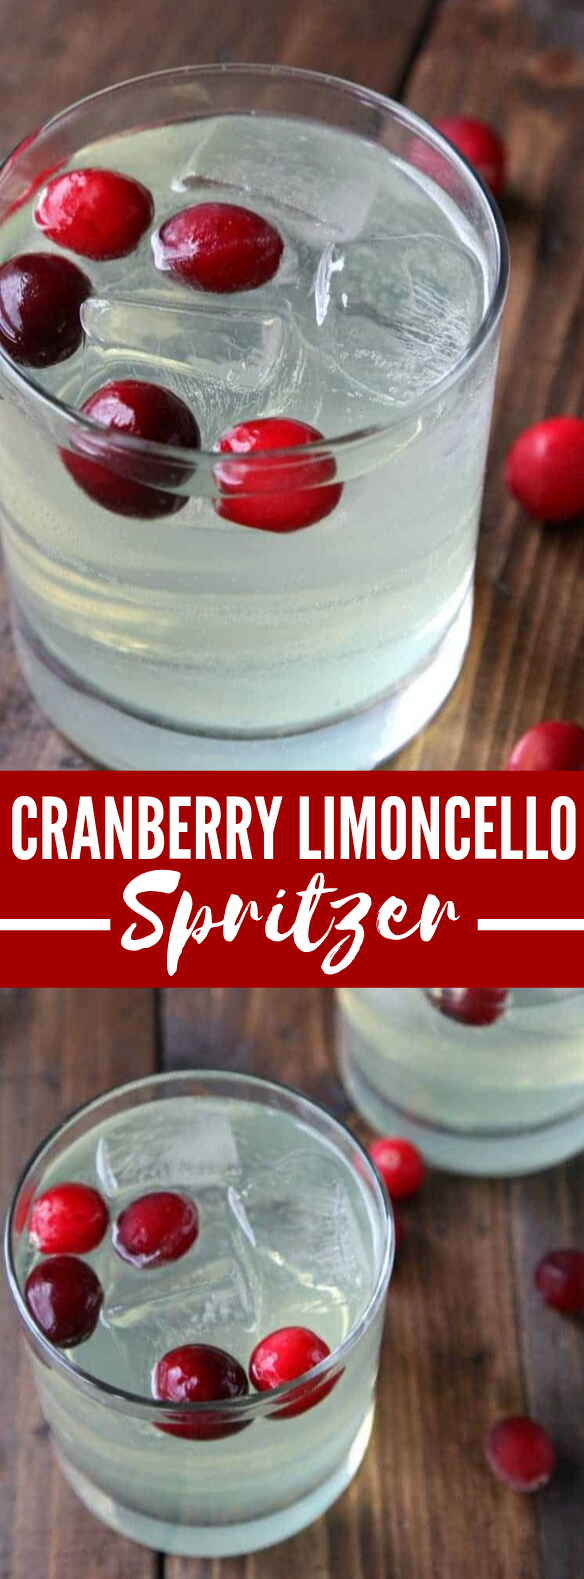 CRANBERRY LIMONCELLO SPRITZER COCKTAIL RECIPE (ITALIAN COCKTAIL) #drinks #christmas